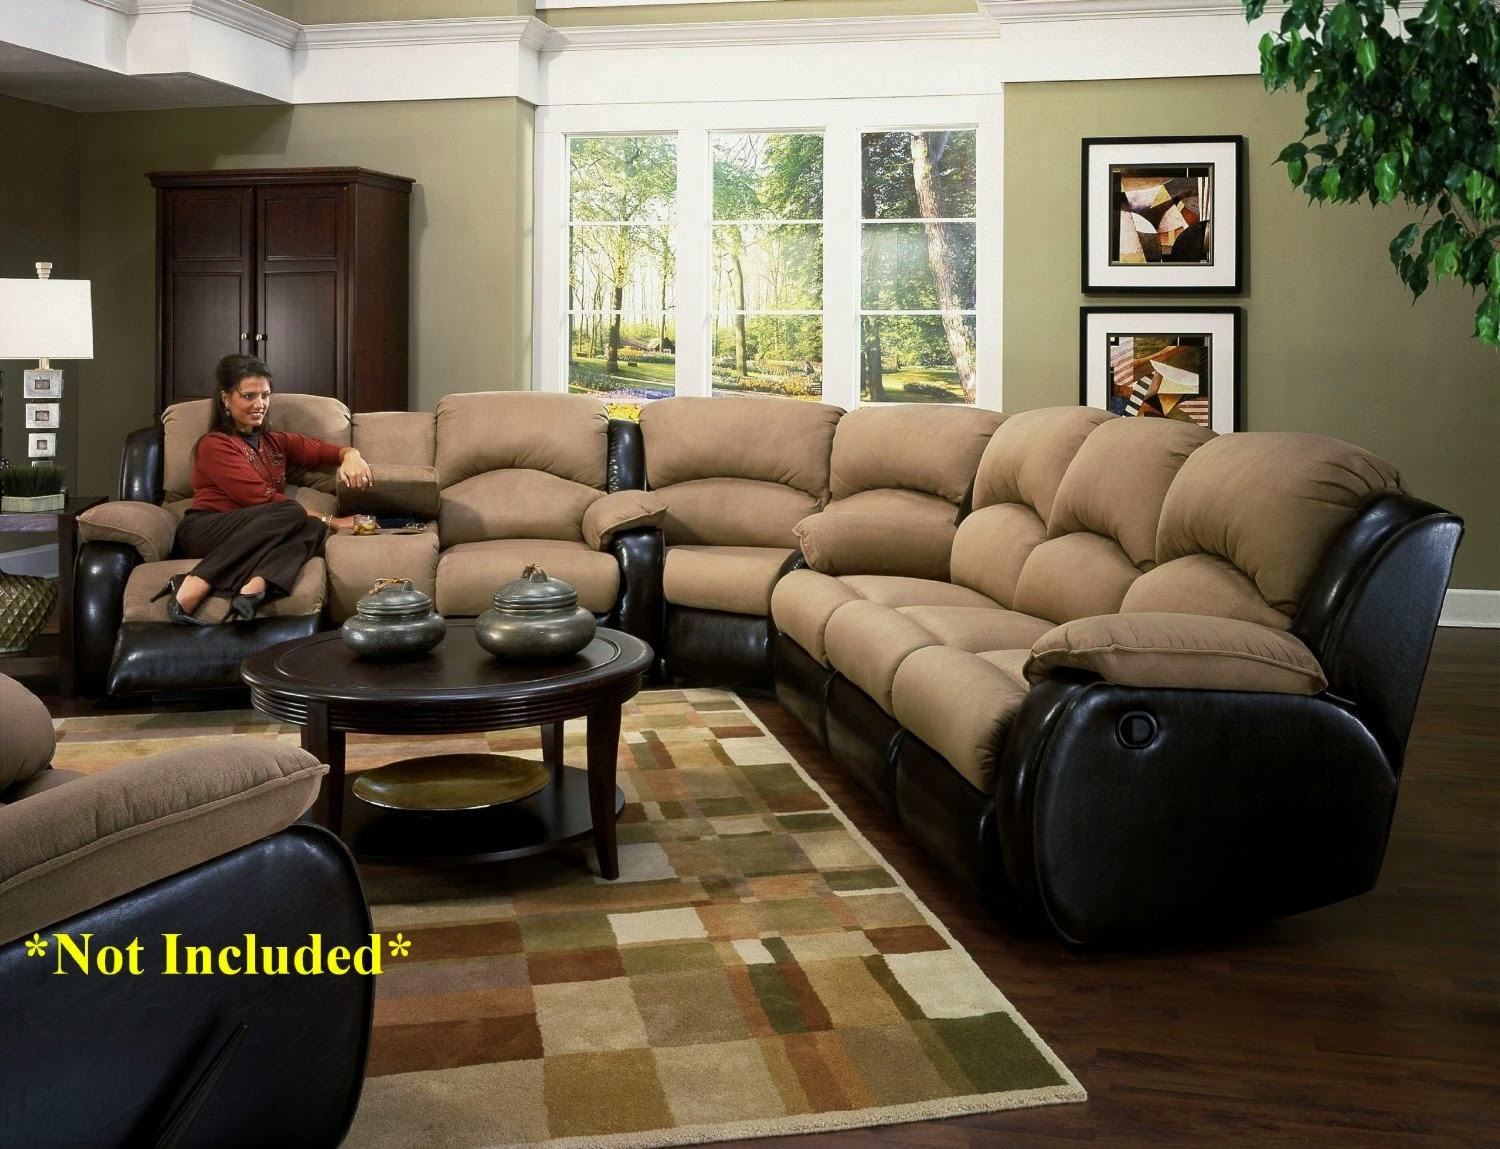 Cover For Dual Reclining Sofa Mayo Sofas Reviews The Best Ratings Reviews: Barton 6-pc ...